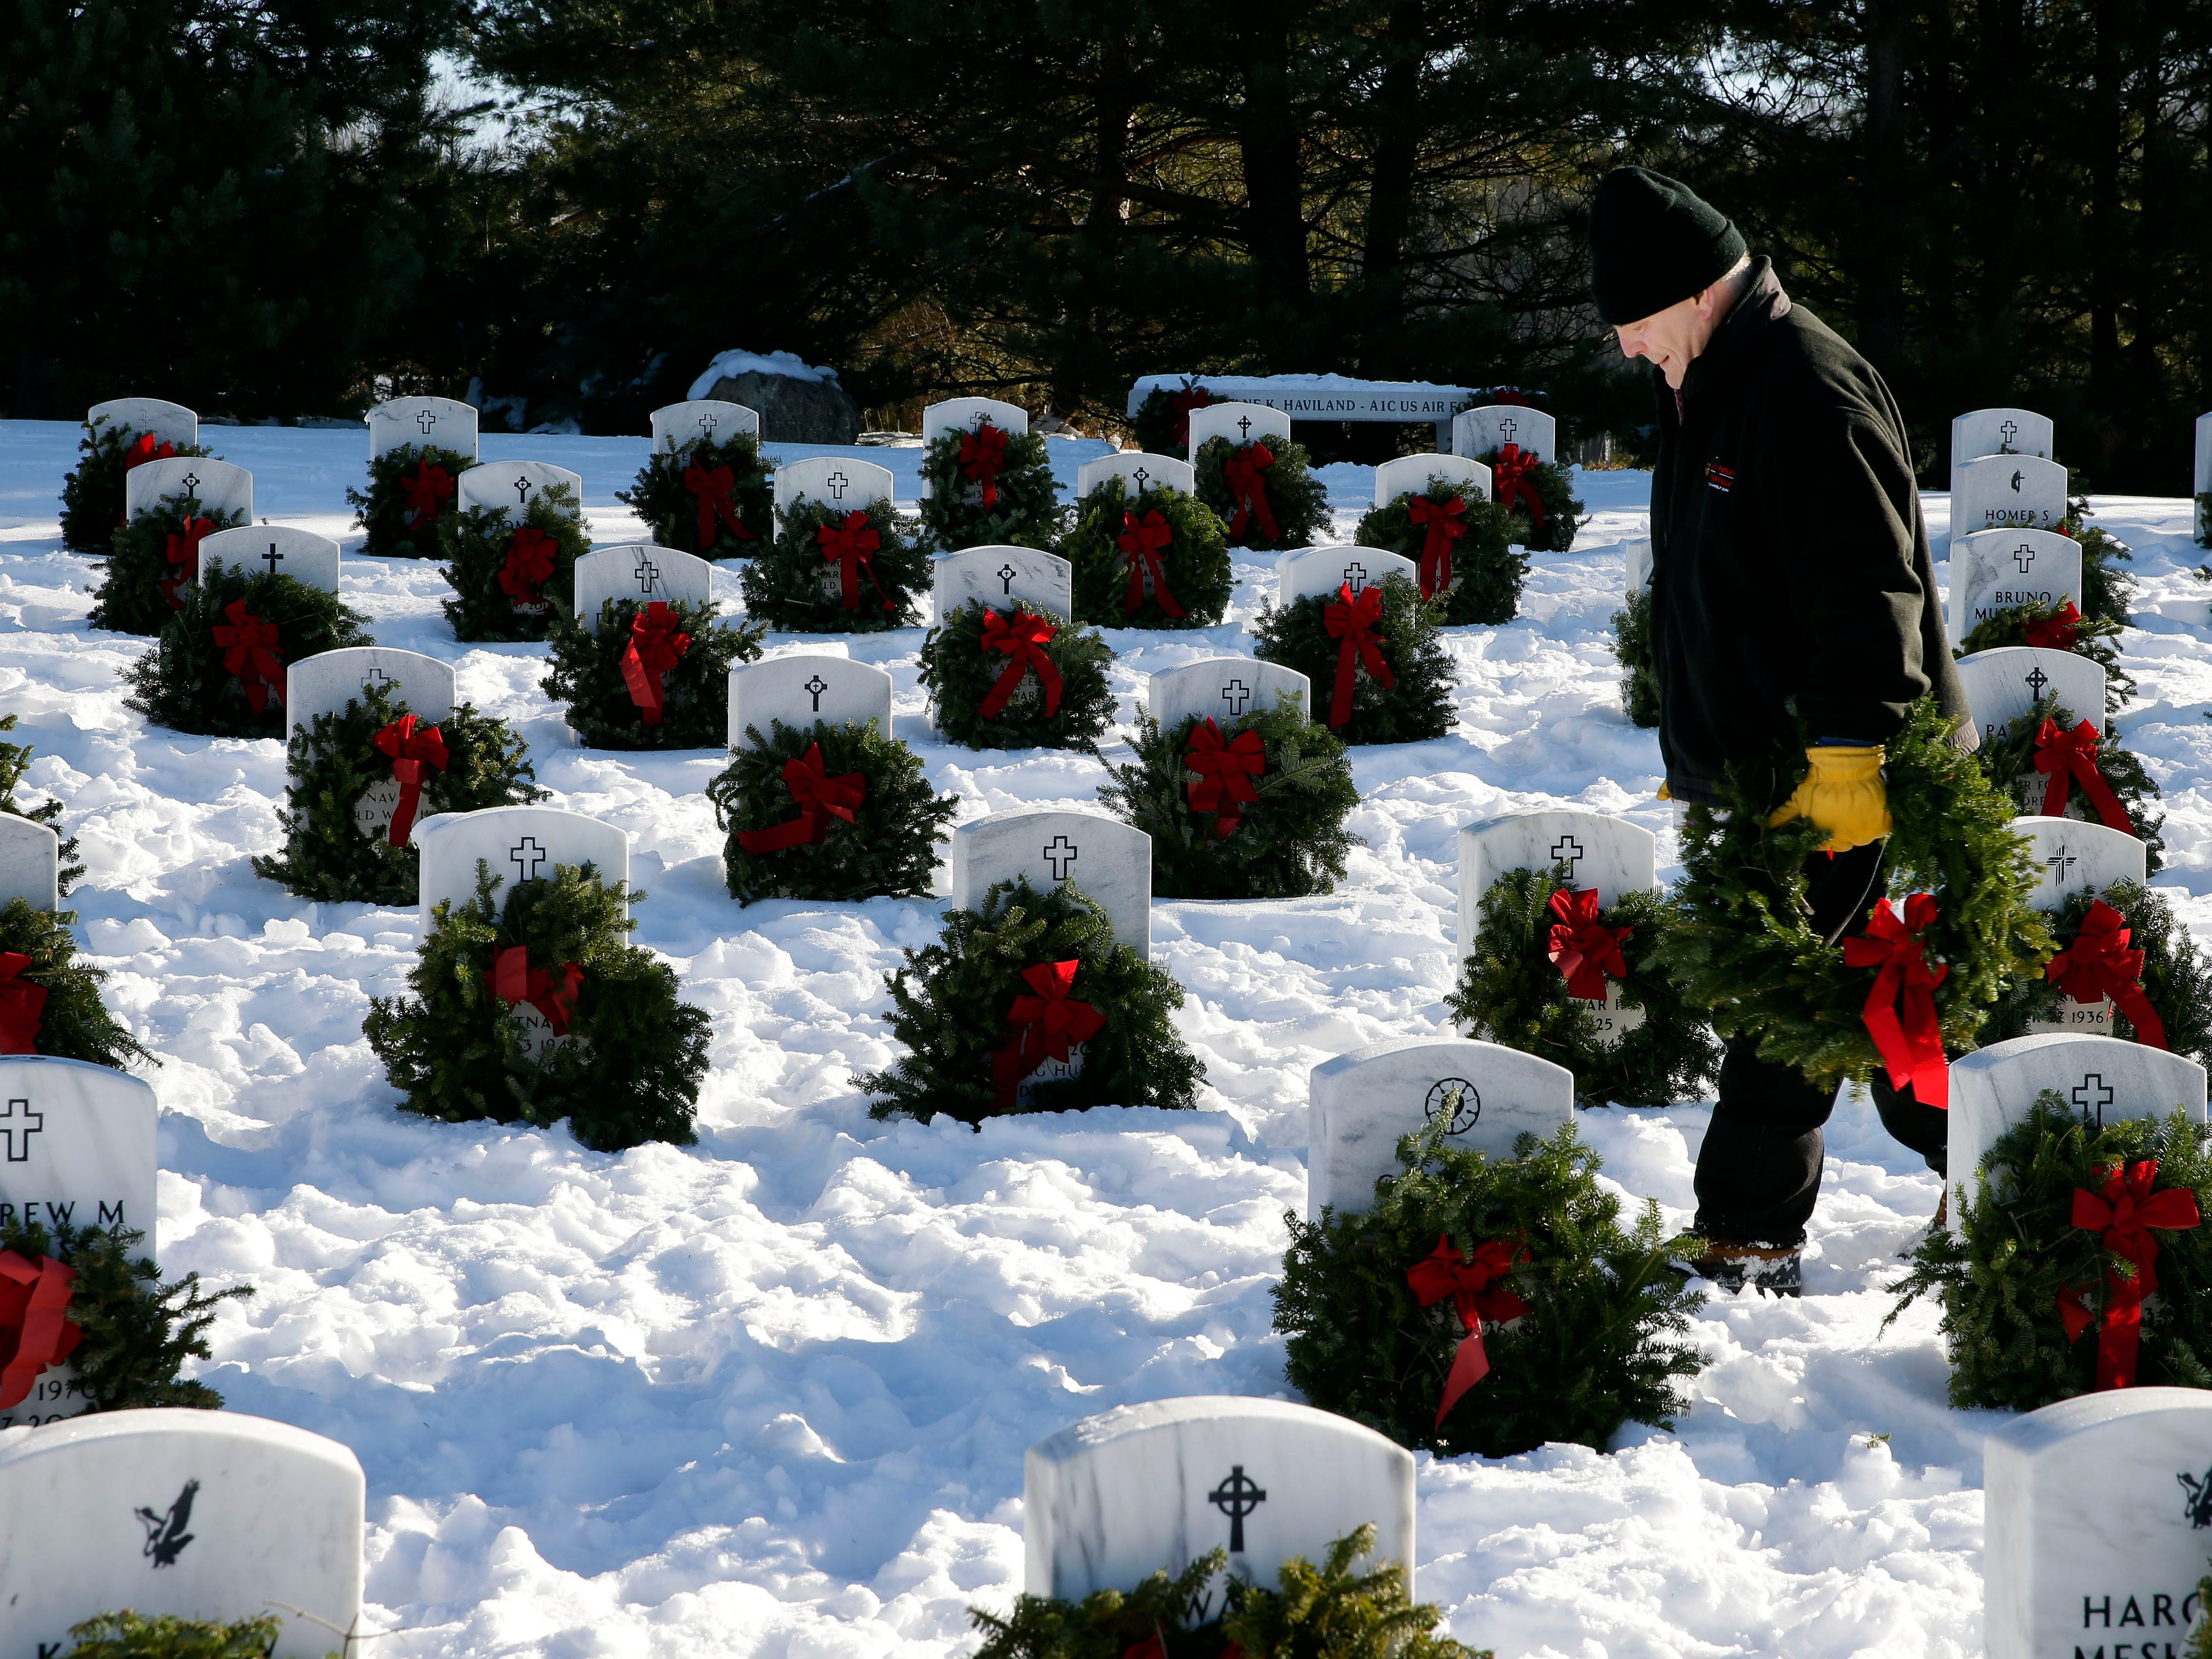 Steven Kalamen of Naperville, Illinois joins other volunteers taking part in Wreaths Across America Day at the Central Wisconsin Veterans Memorial Cemetery Saturday, December 15, 2018, in King, Wis. Over 7000 graves at King were honored with wreaths. Over 1400 other locations took part in the coordinated ceremony.